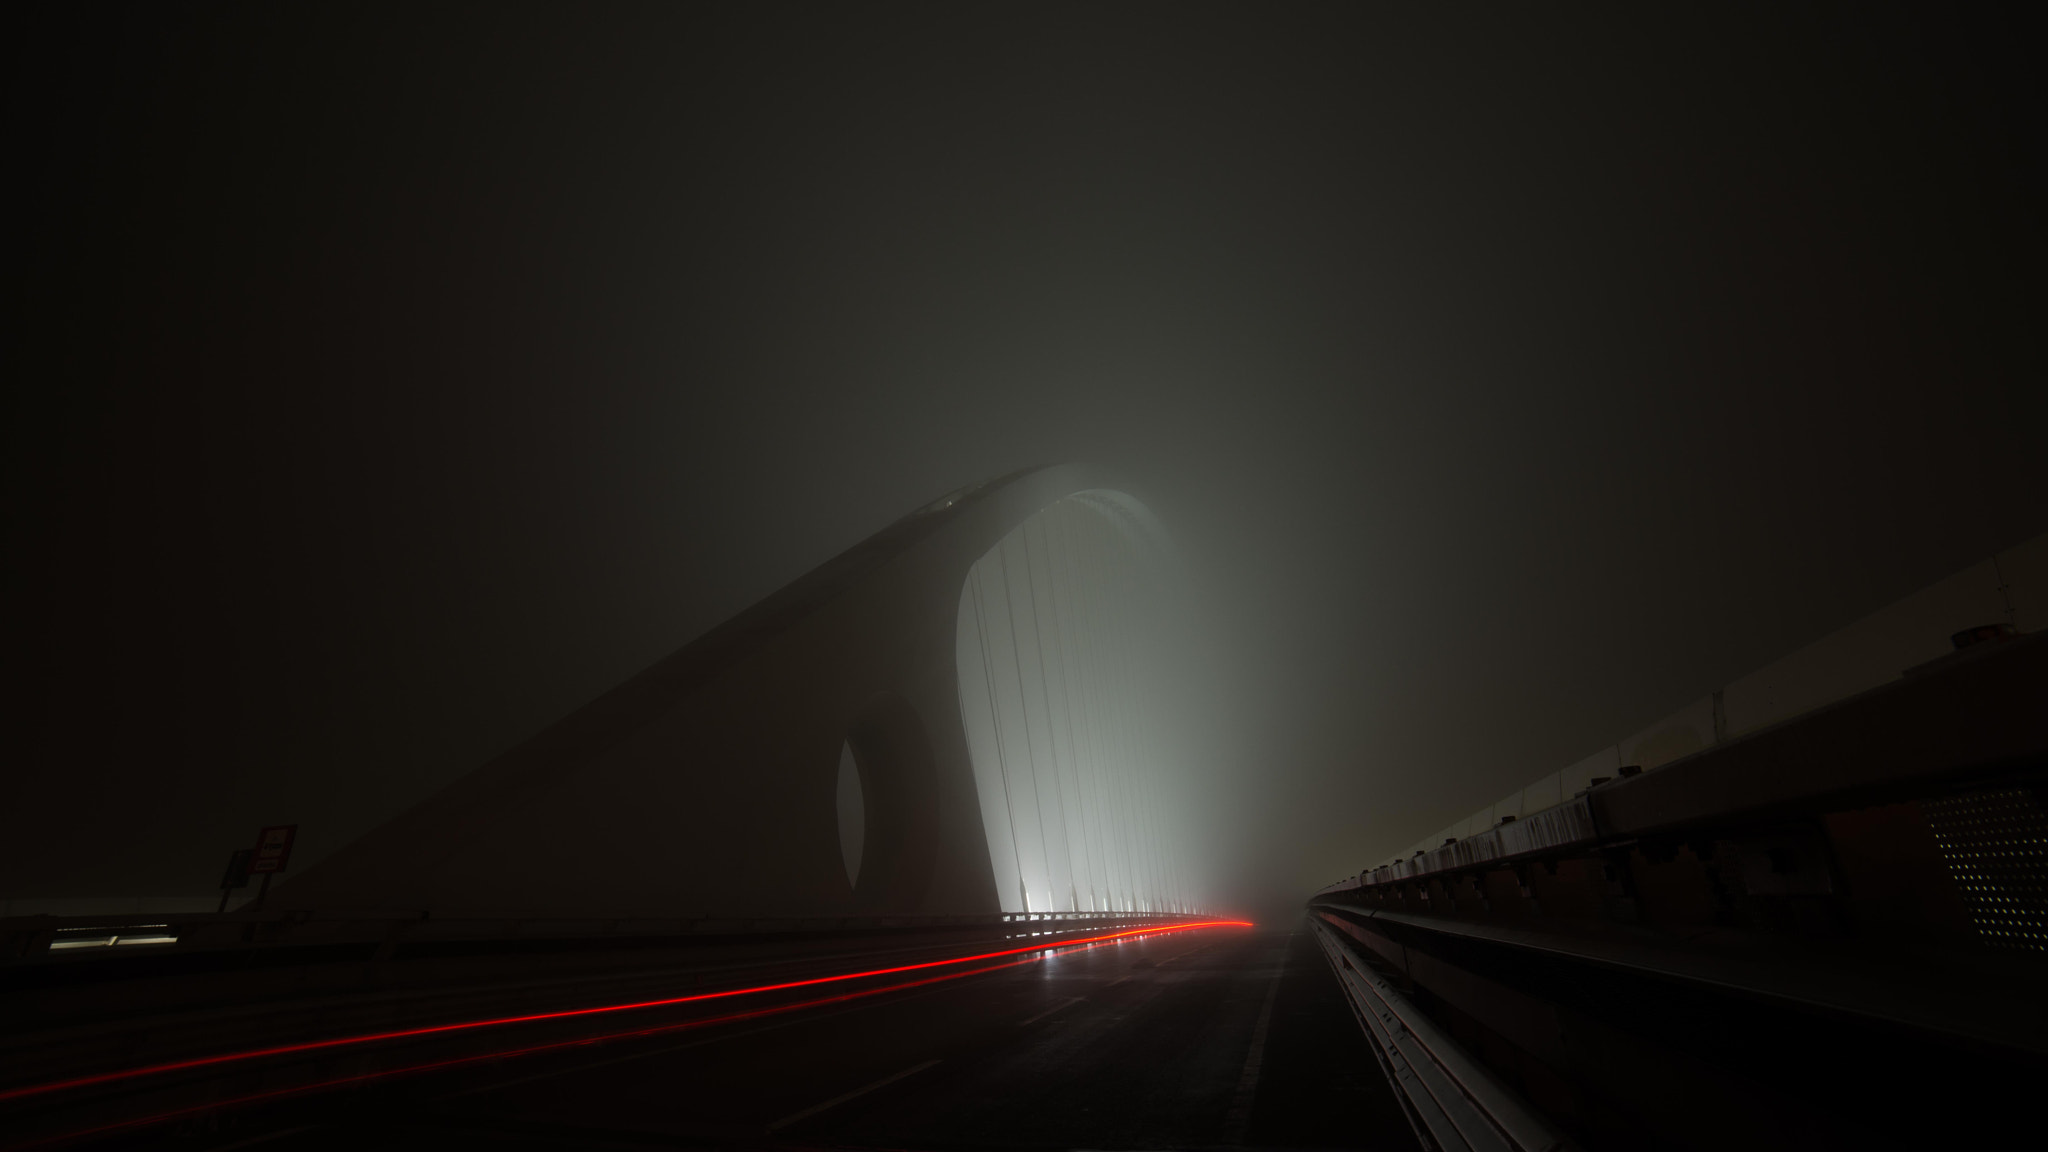 Photograph Calatrava into the Fog by Michele Fornaciari on 500px